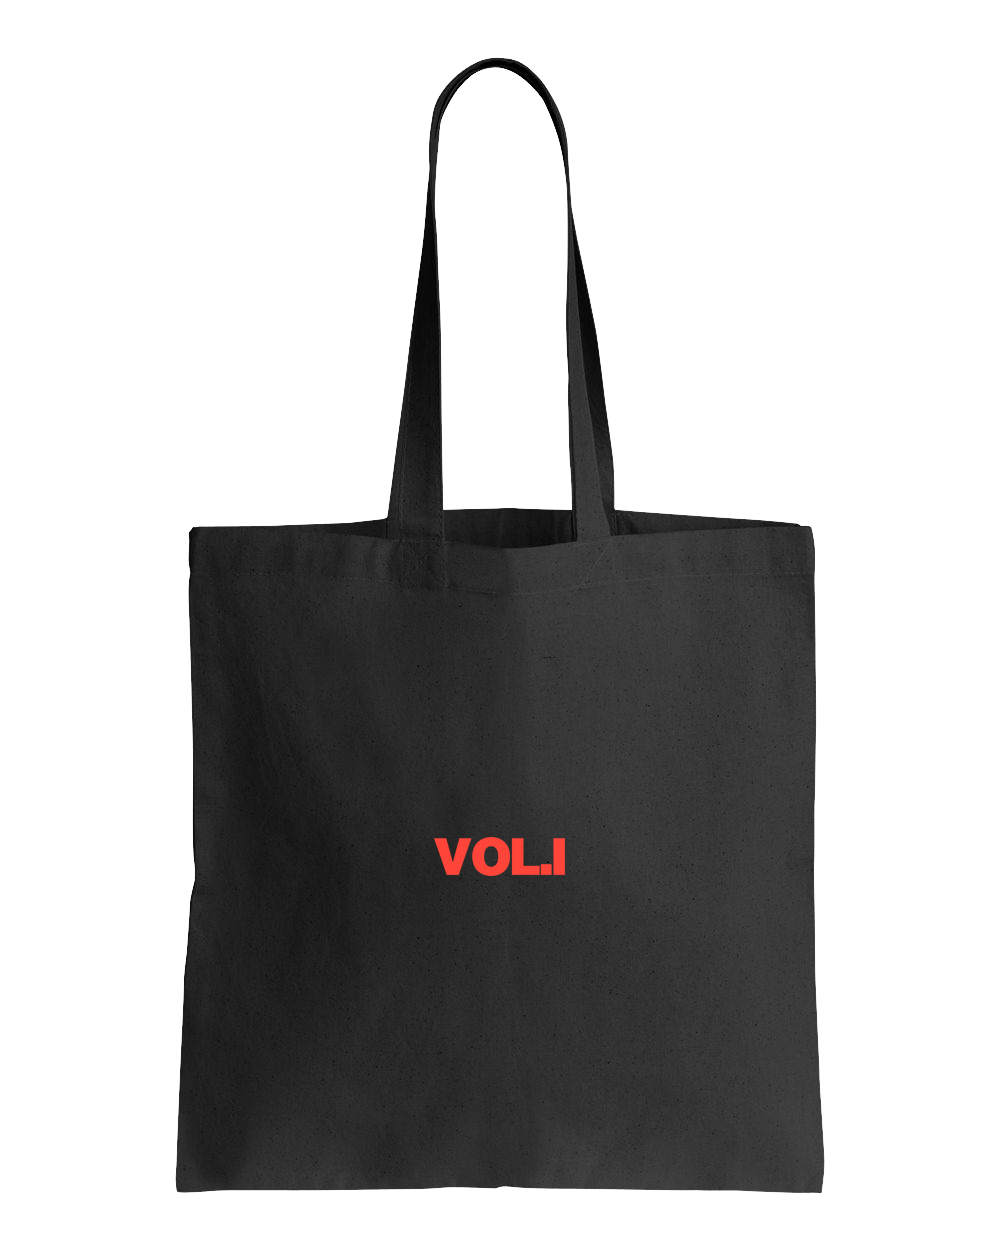 The Marías - Volumes Tote